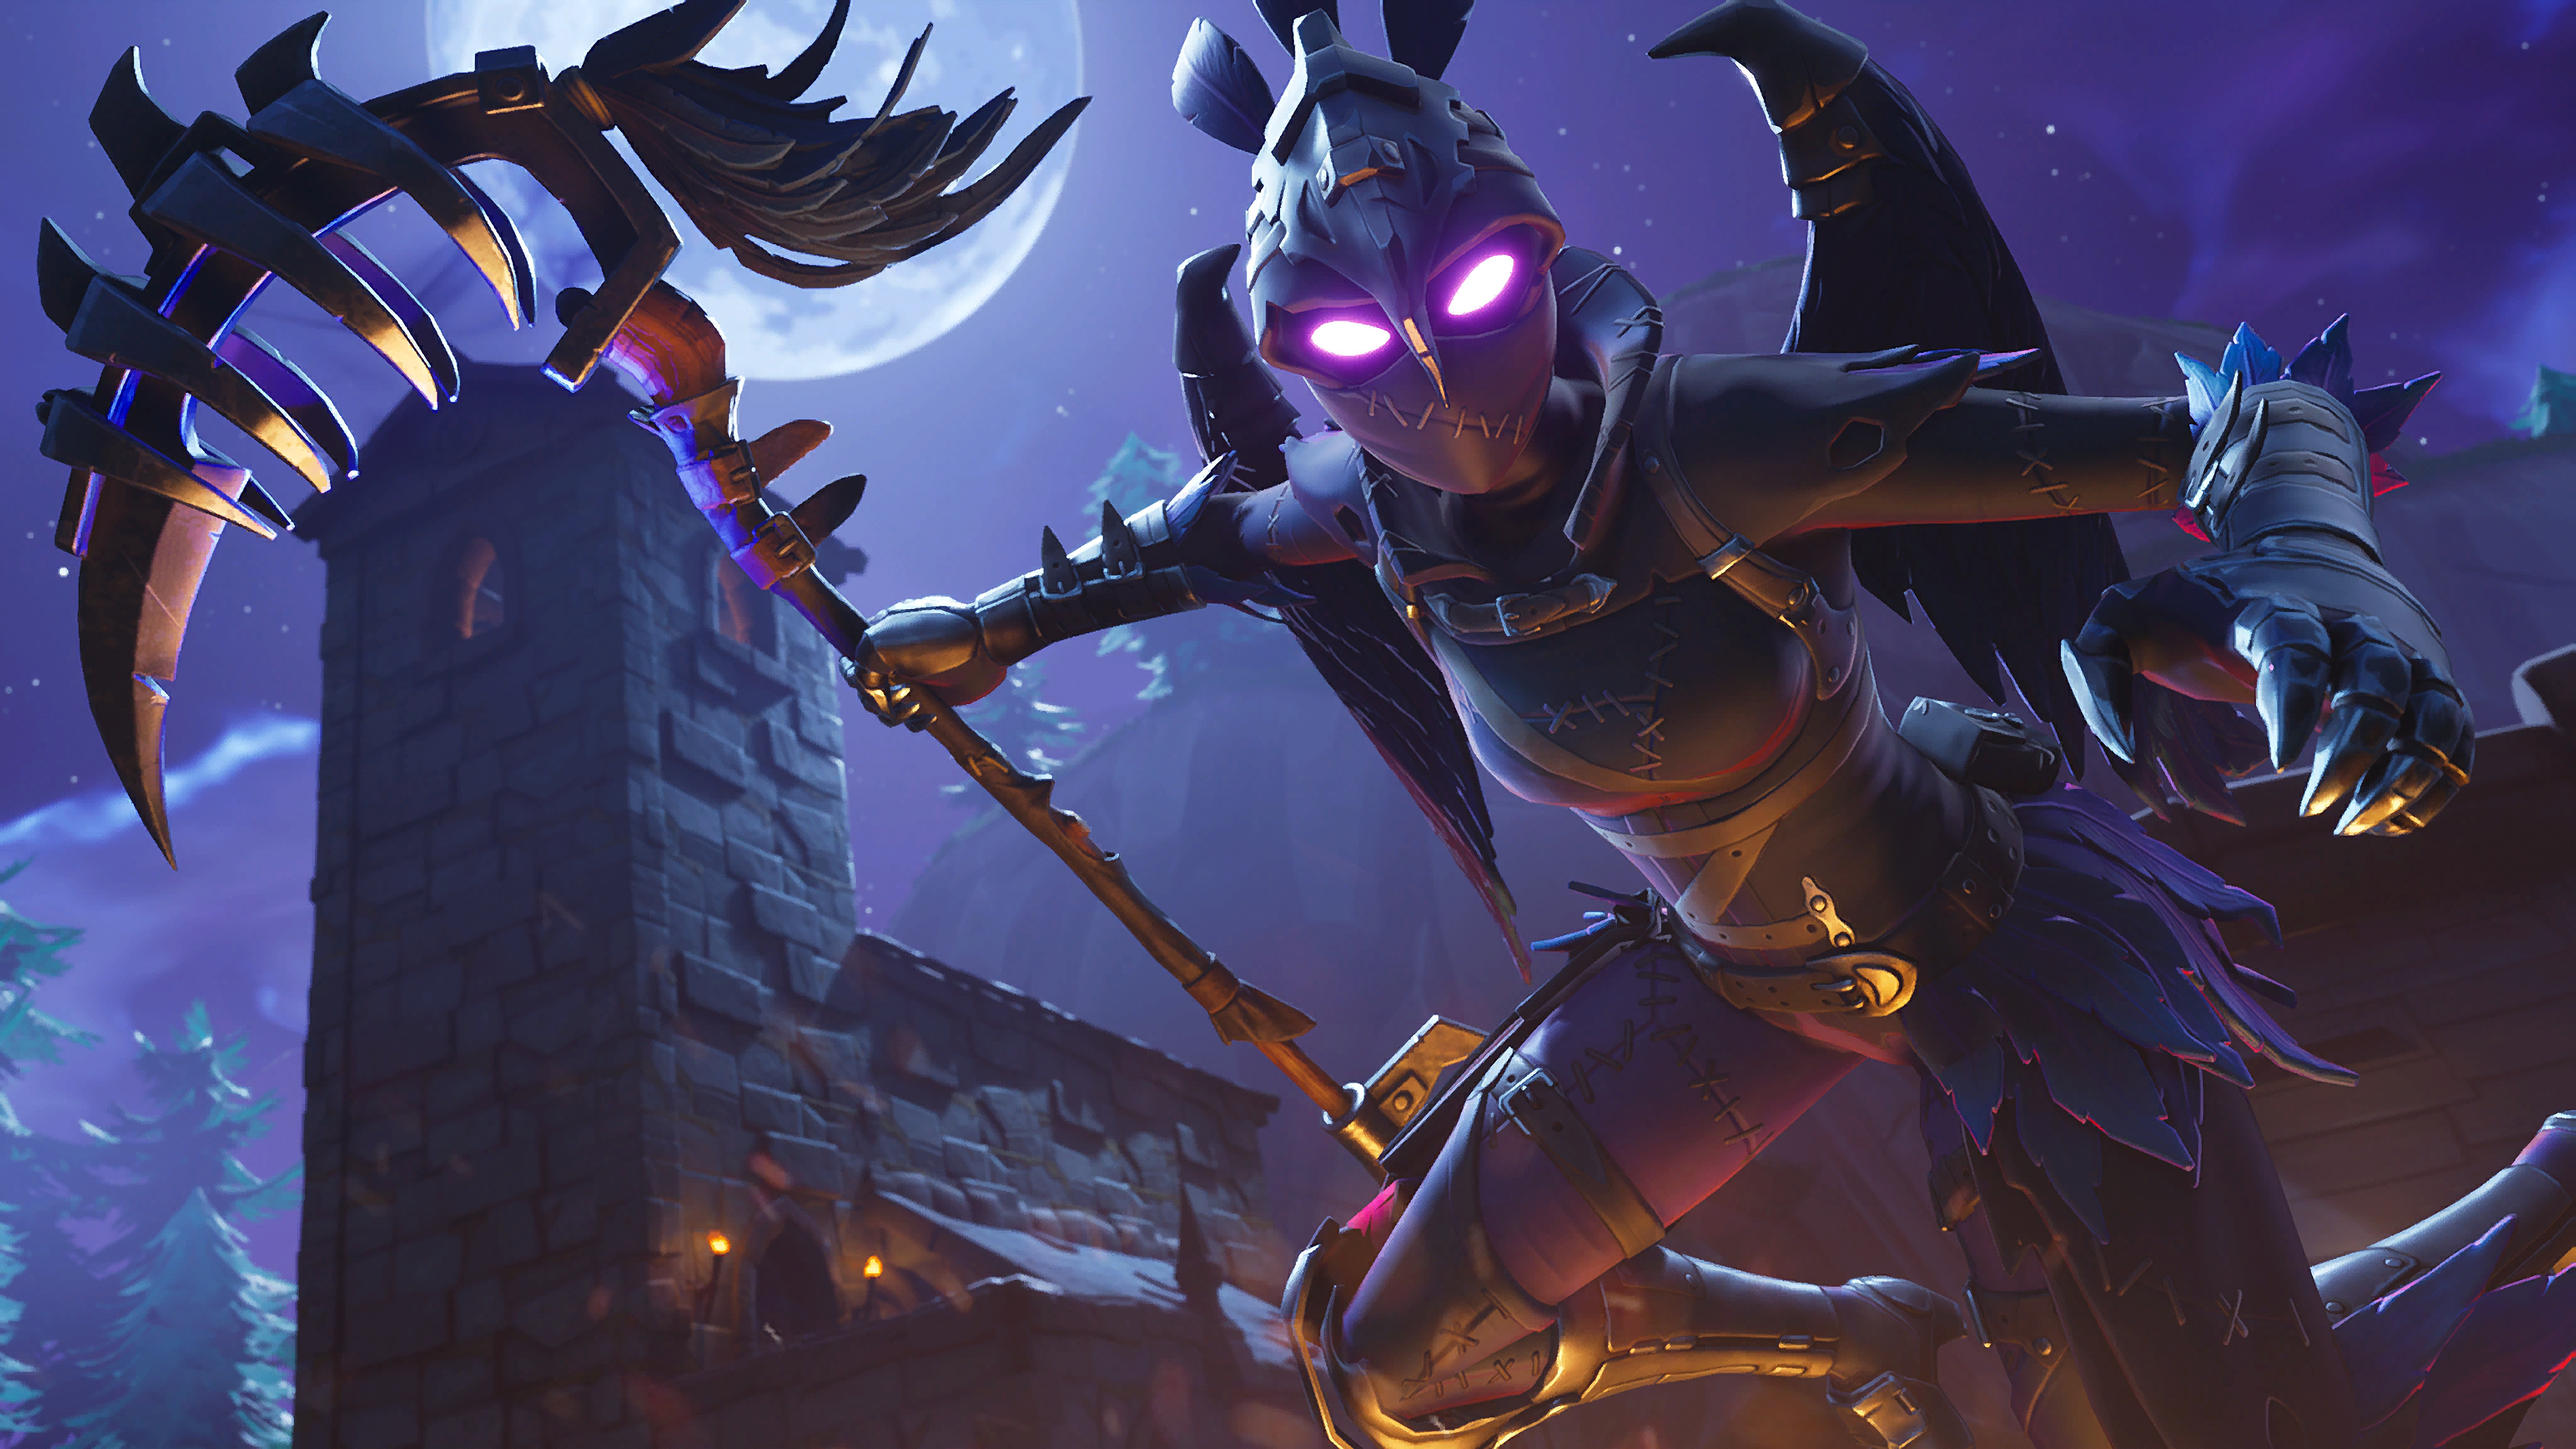 Wallpaper 4k Ravage Fortnite Battle Royale Season 6 4k 2018 Games Wallpapers 4k Wallpapers Fortnite Season 6 Wallpapers Fortnite Wallpapers Games Wallpapers Hd Wallpapers Ps Games Wallpapers